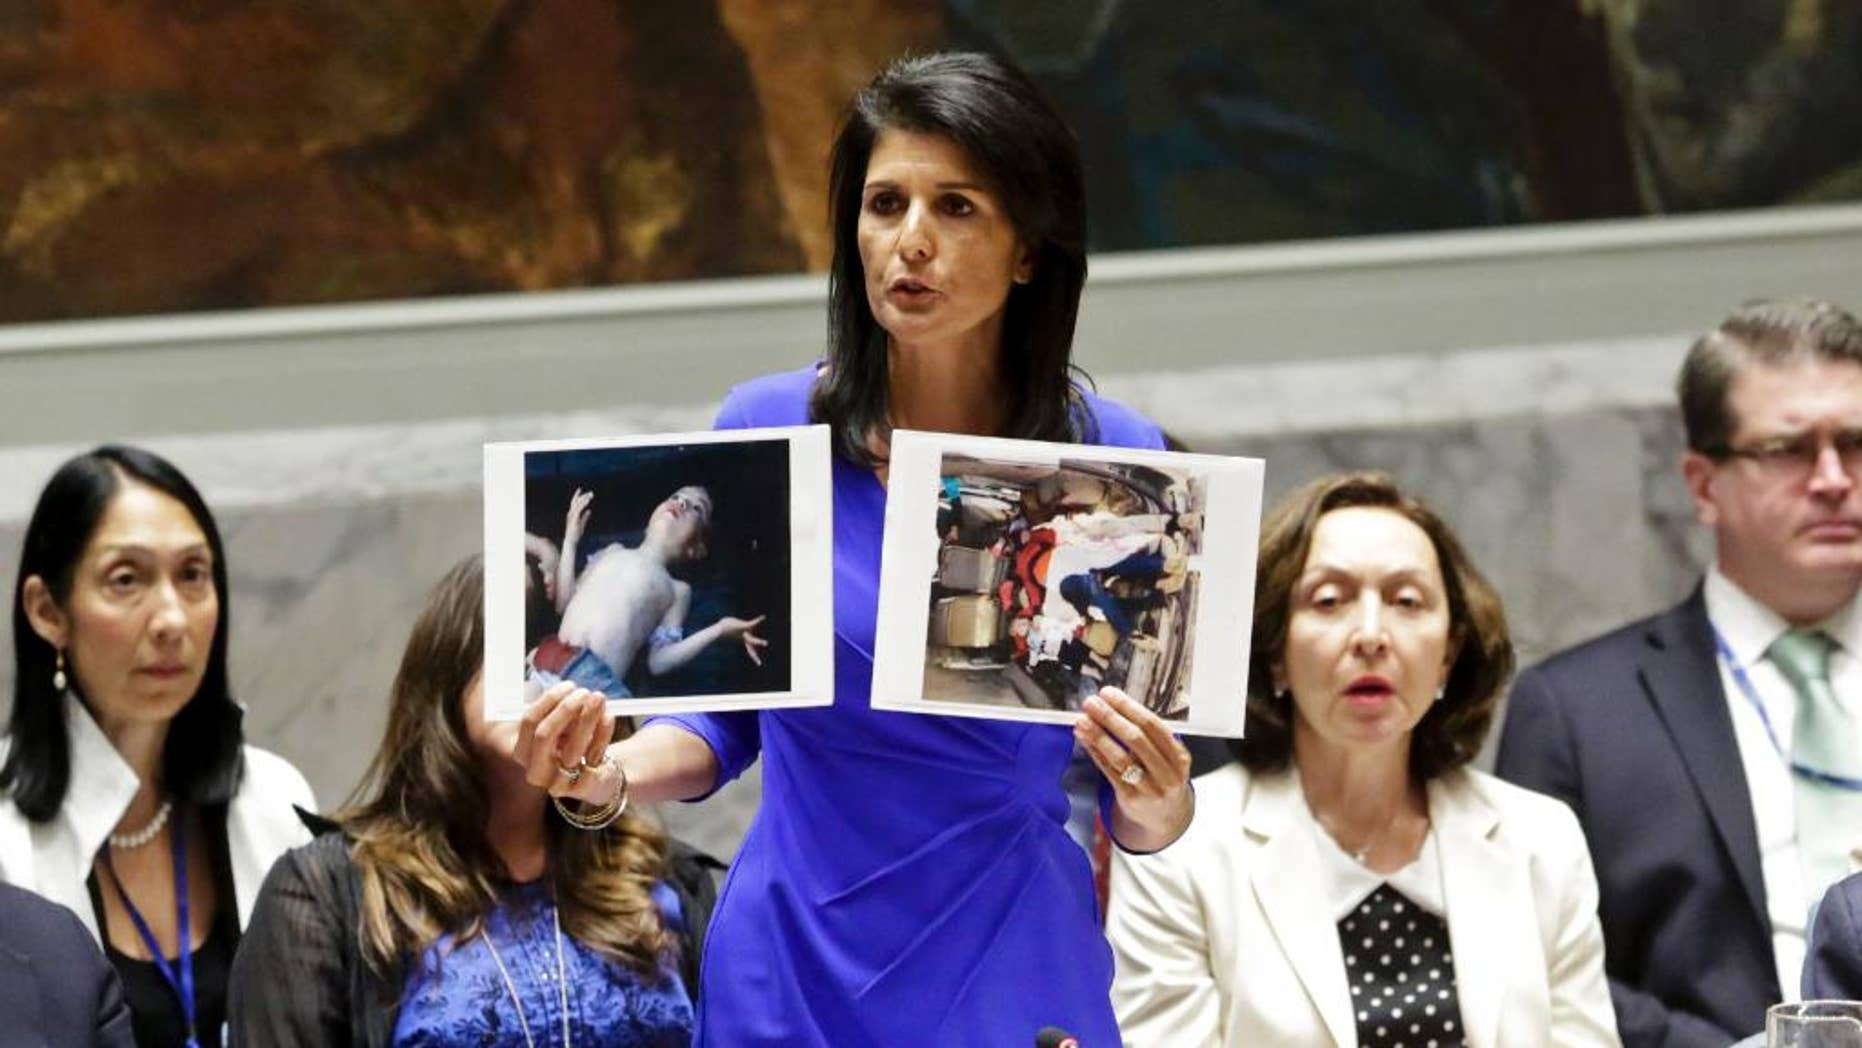 Nikki Haley, United States' Ambassador United Nations, shows pictures of Syrian victims of chemical attacks as she addresses a meeting of the Security Council on Syria at U.N. headquarters, Wednesday, April 5, 2017. (AP Photo/Bebeto Matthews)